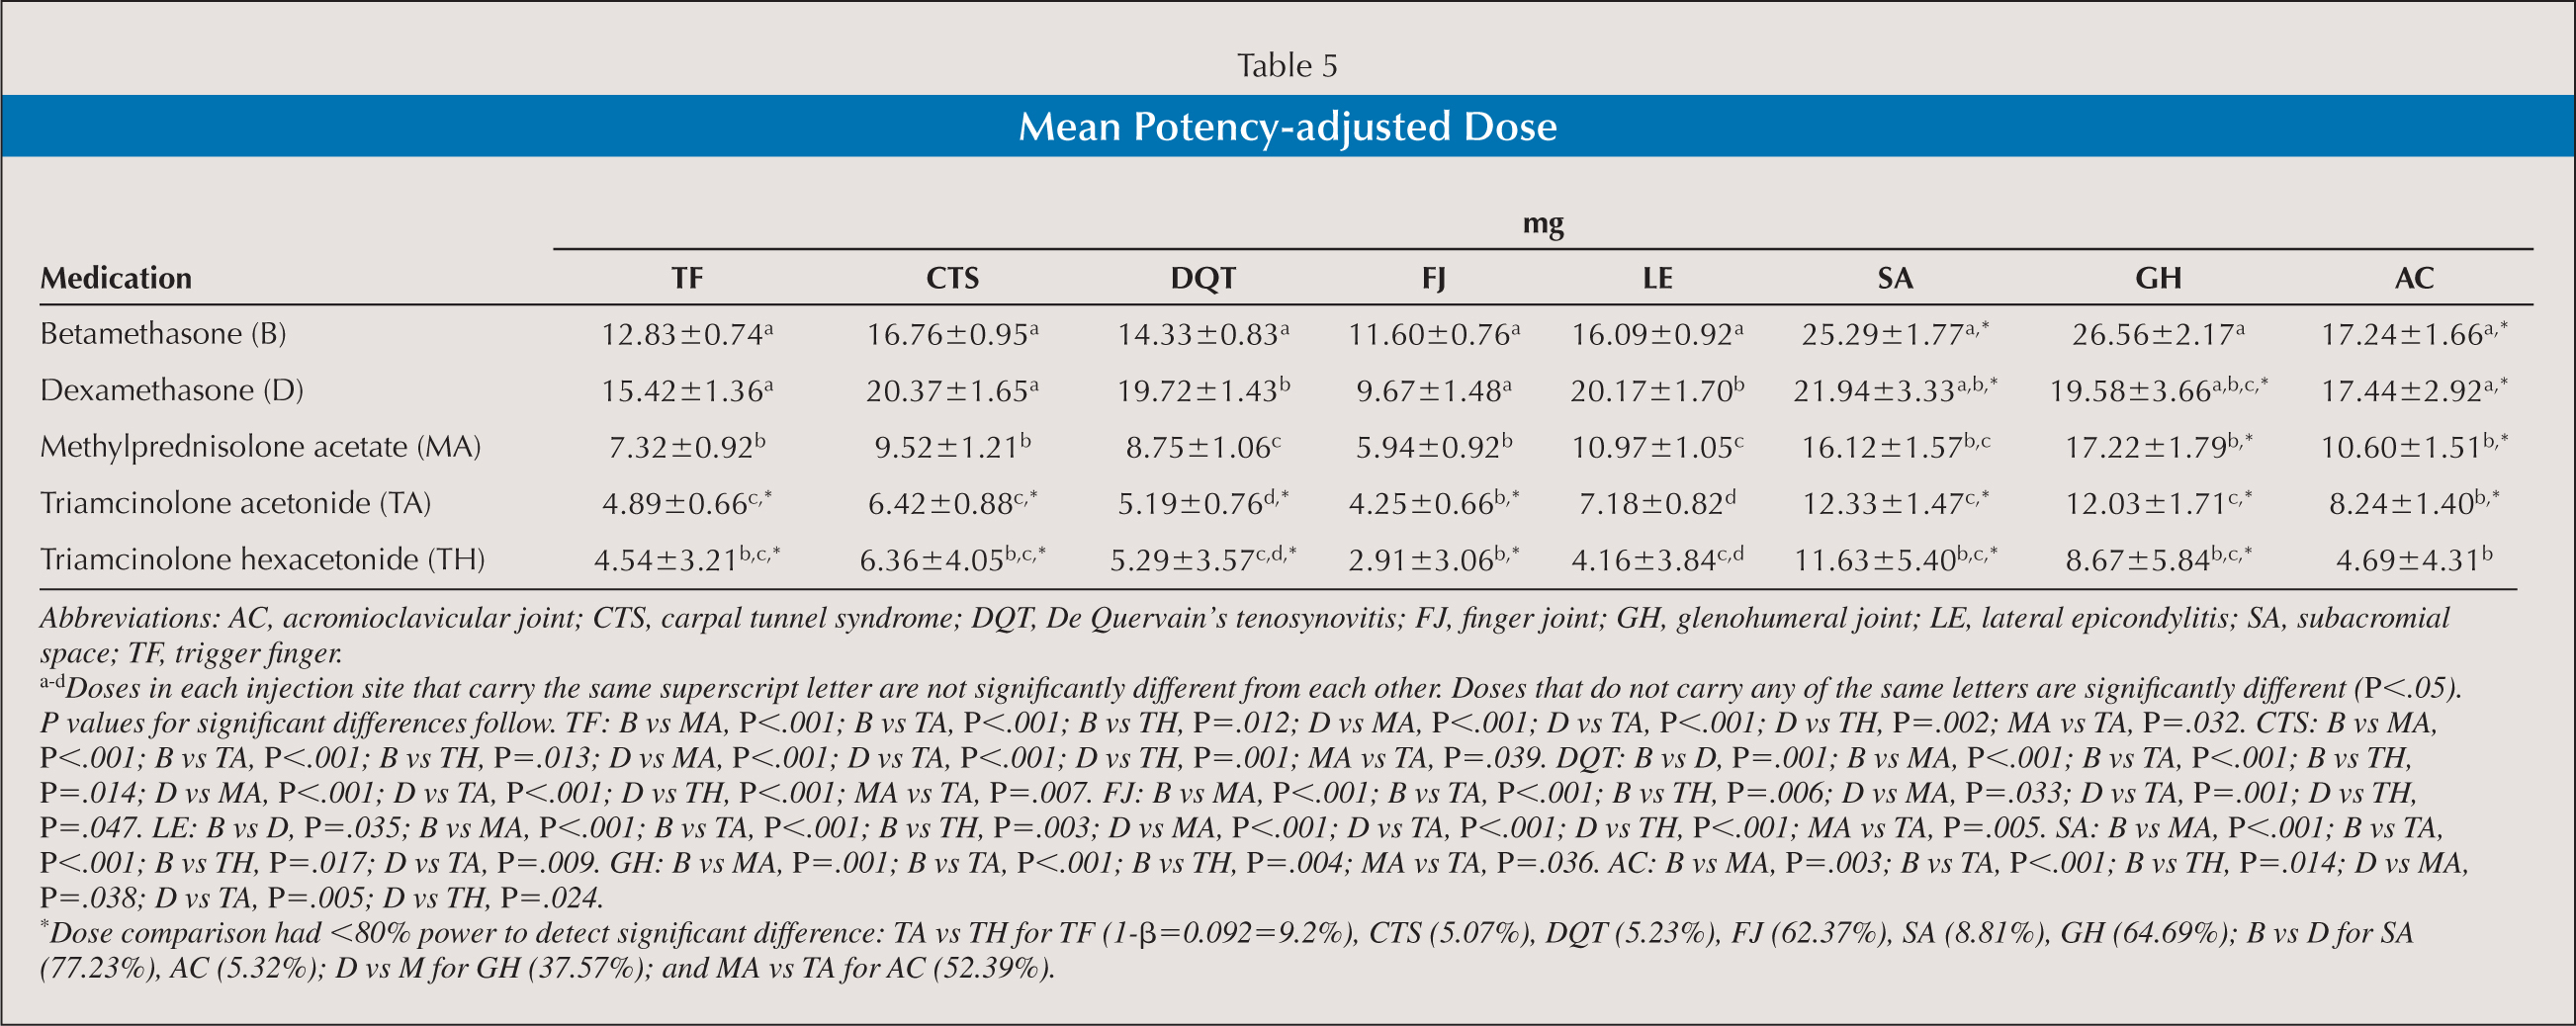 Mean Potency-adjusted Dose